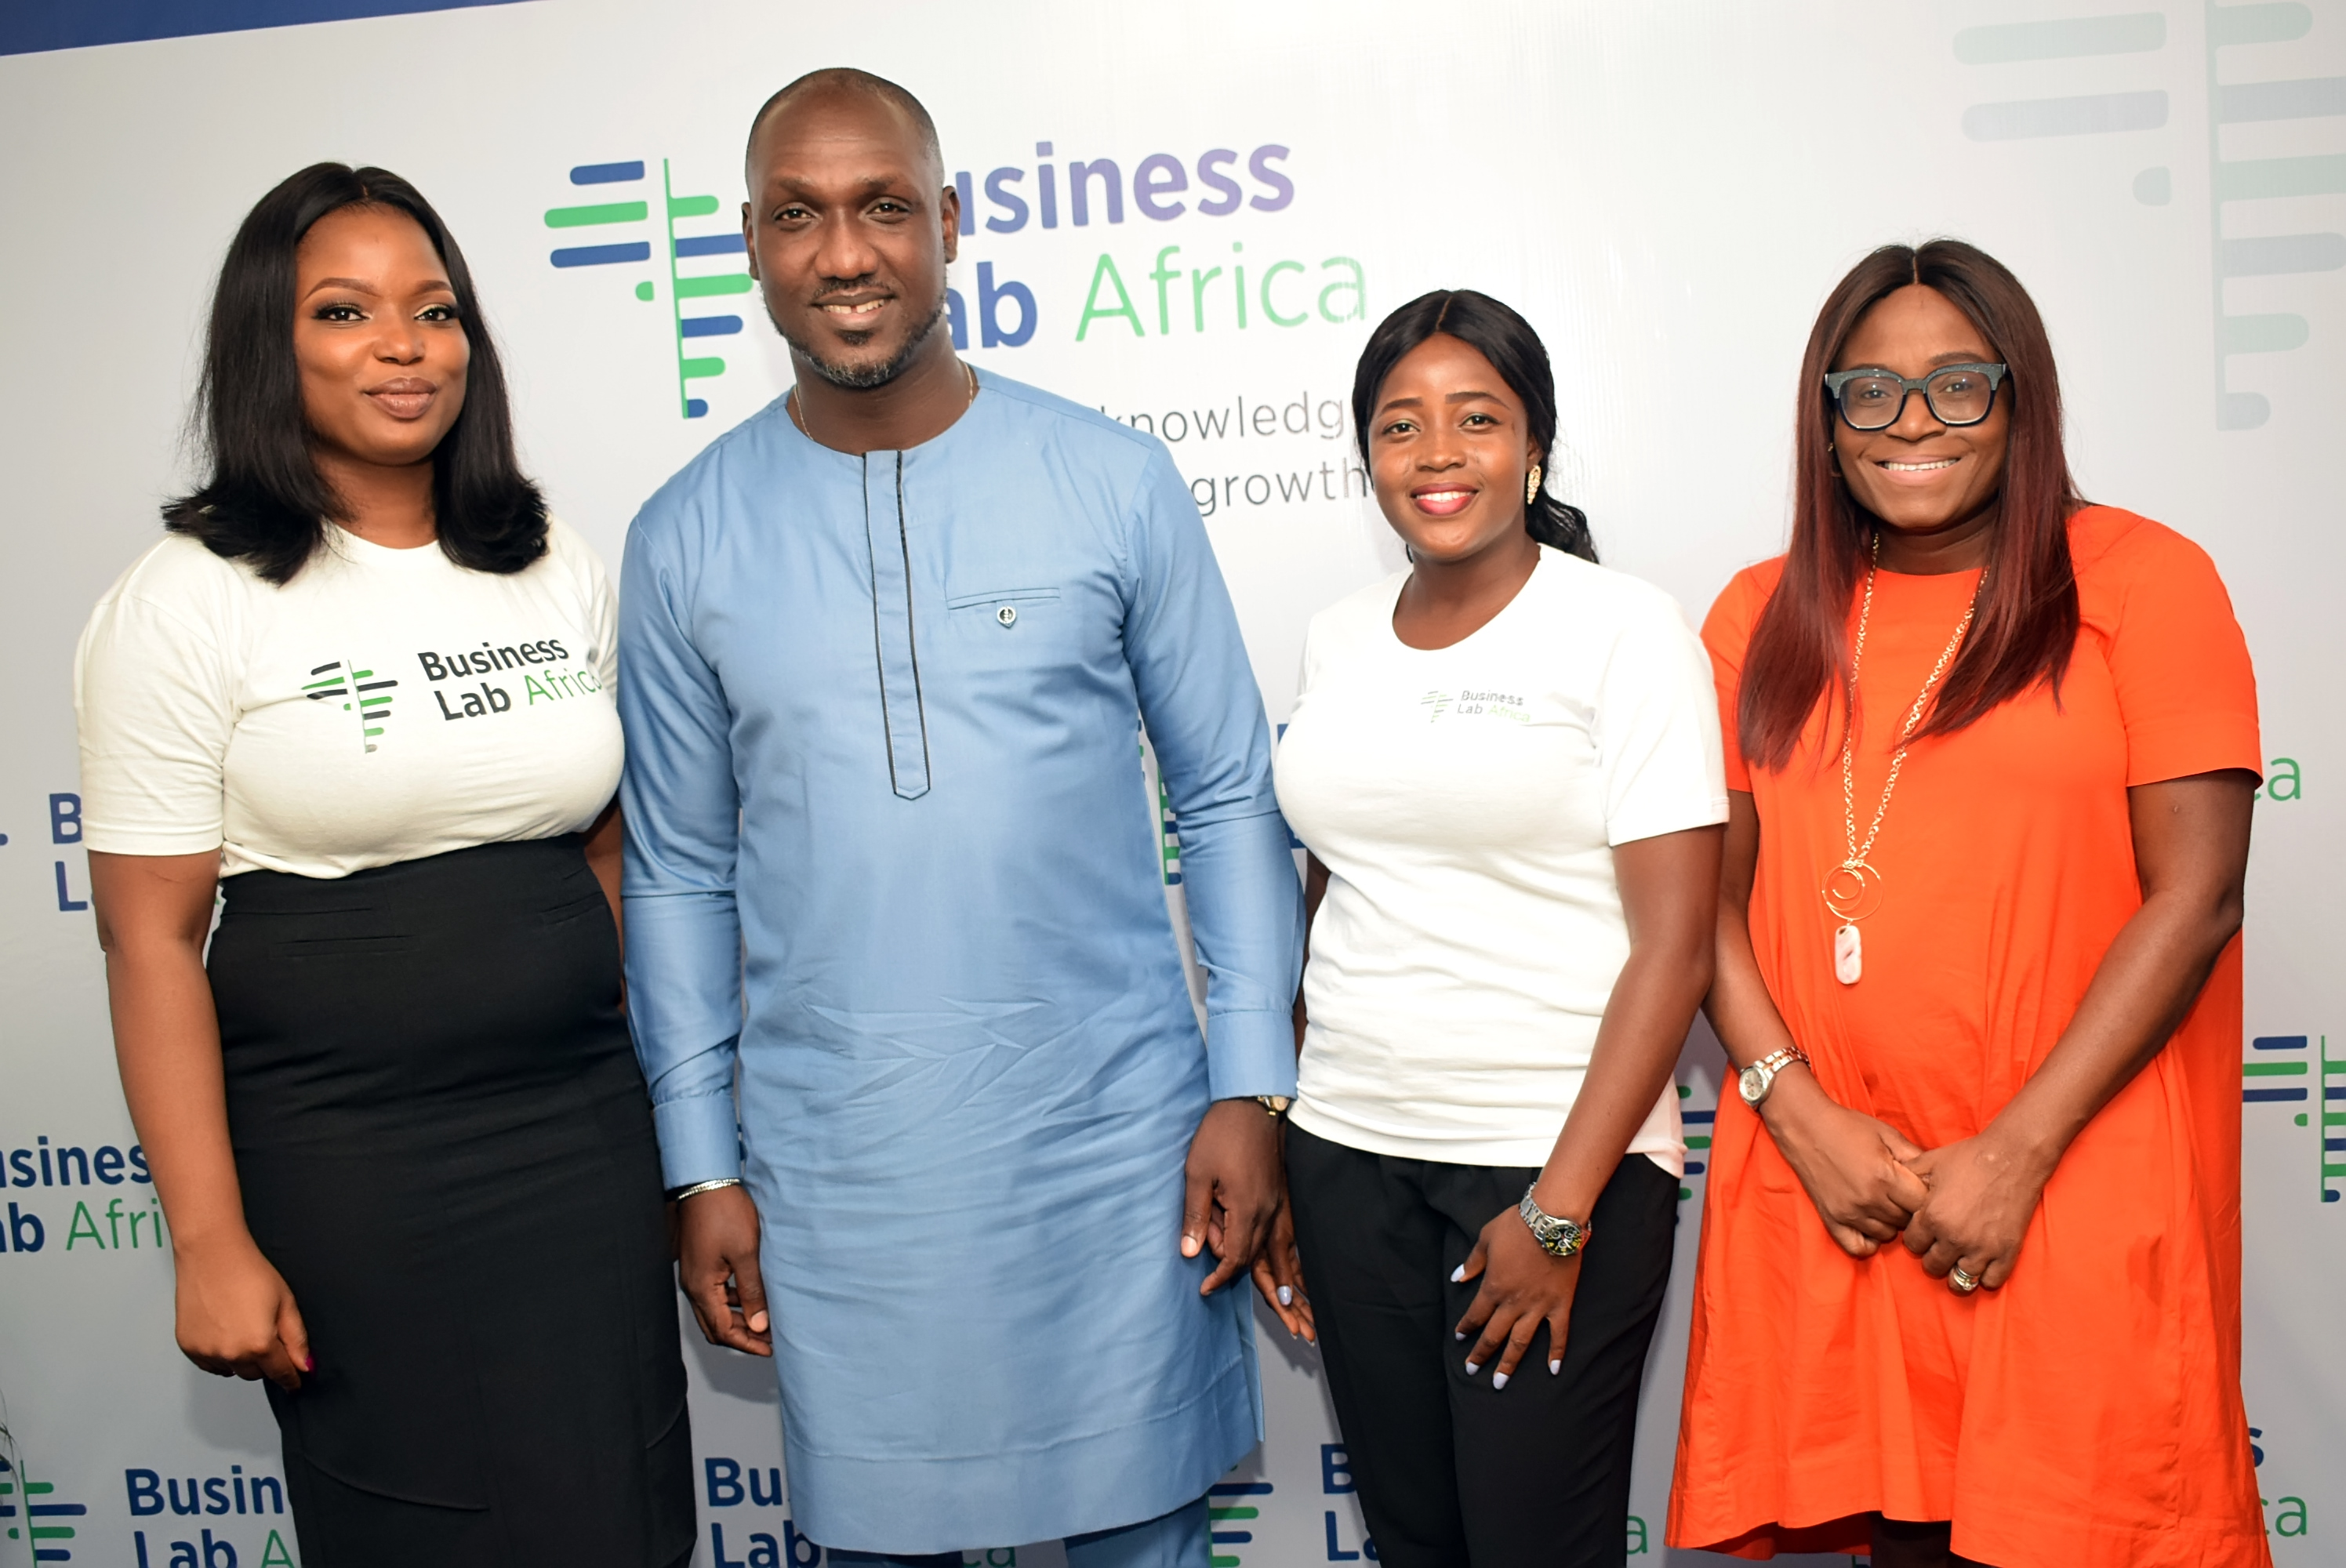 Triciabiz Launches Online Business School for Entrepreneurs in Africa